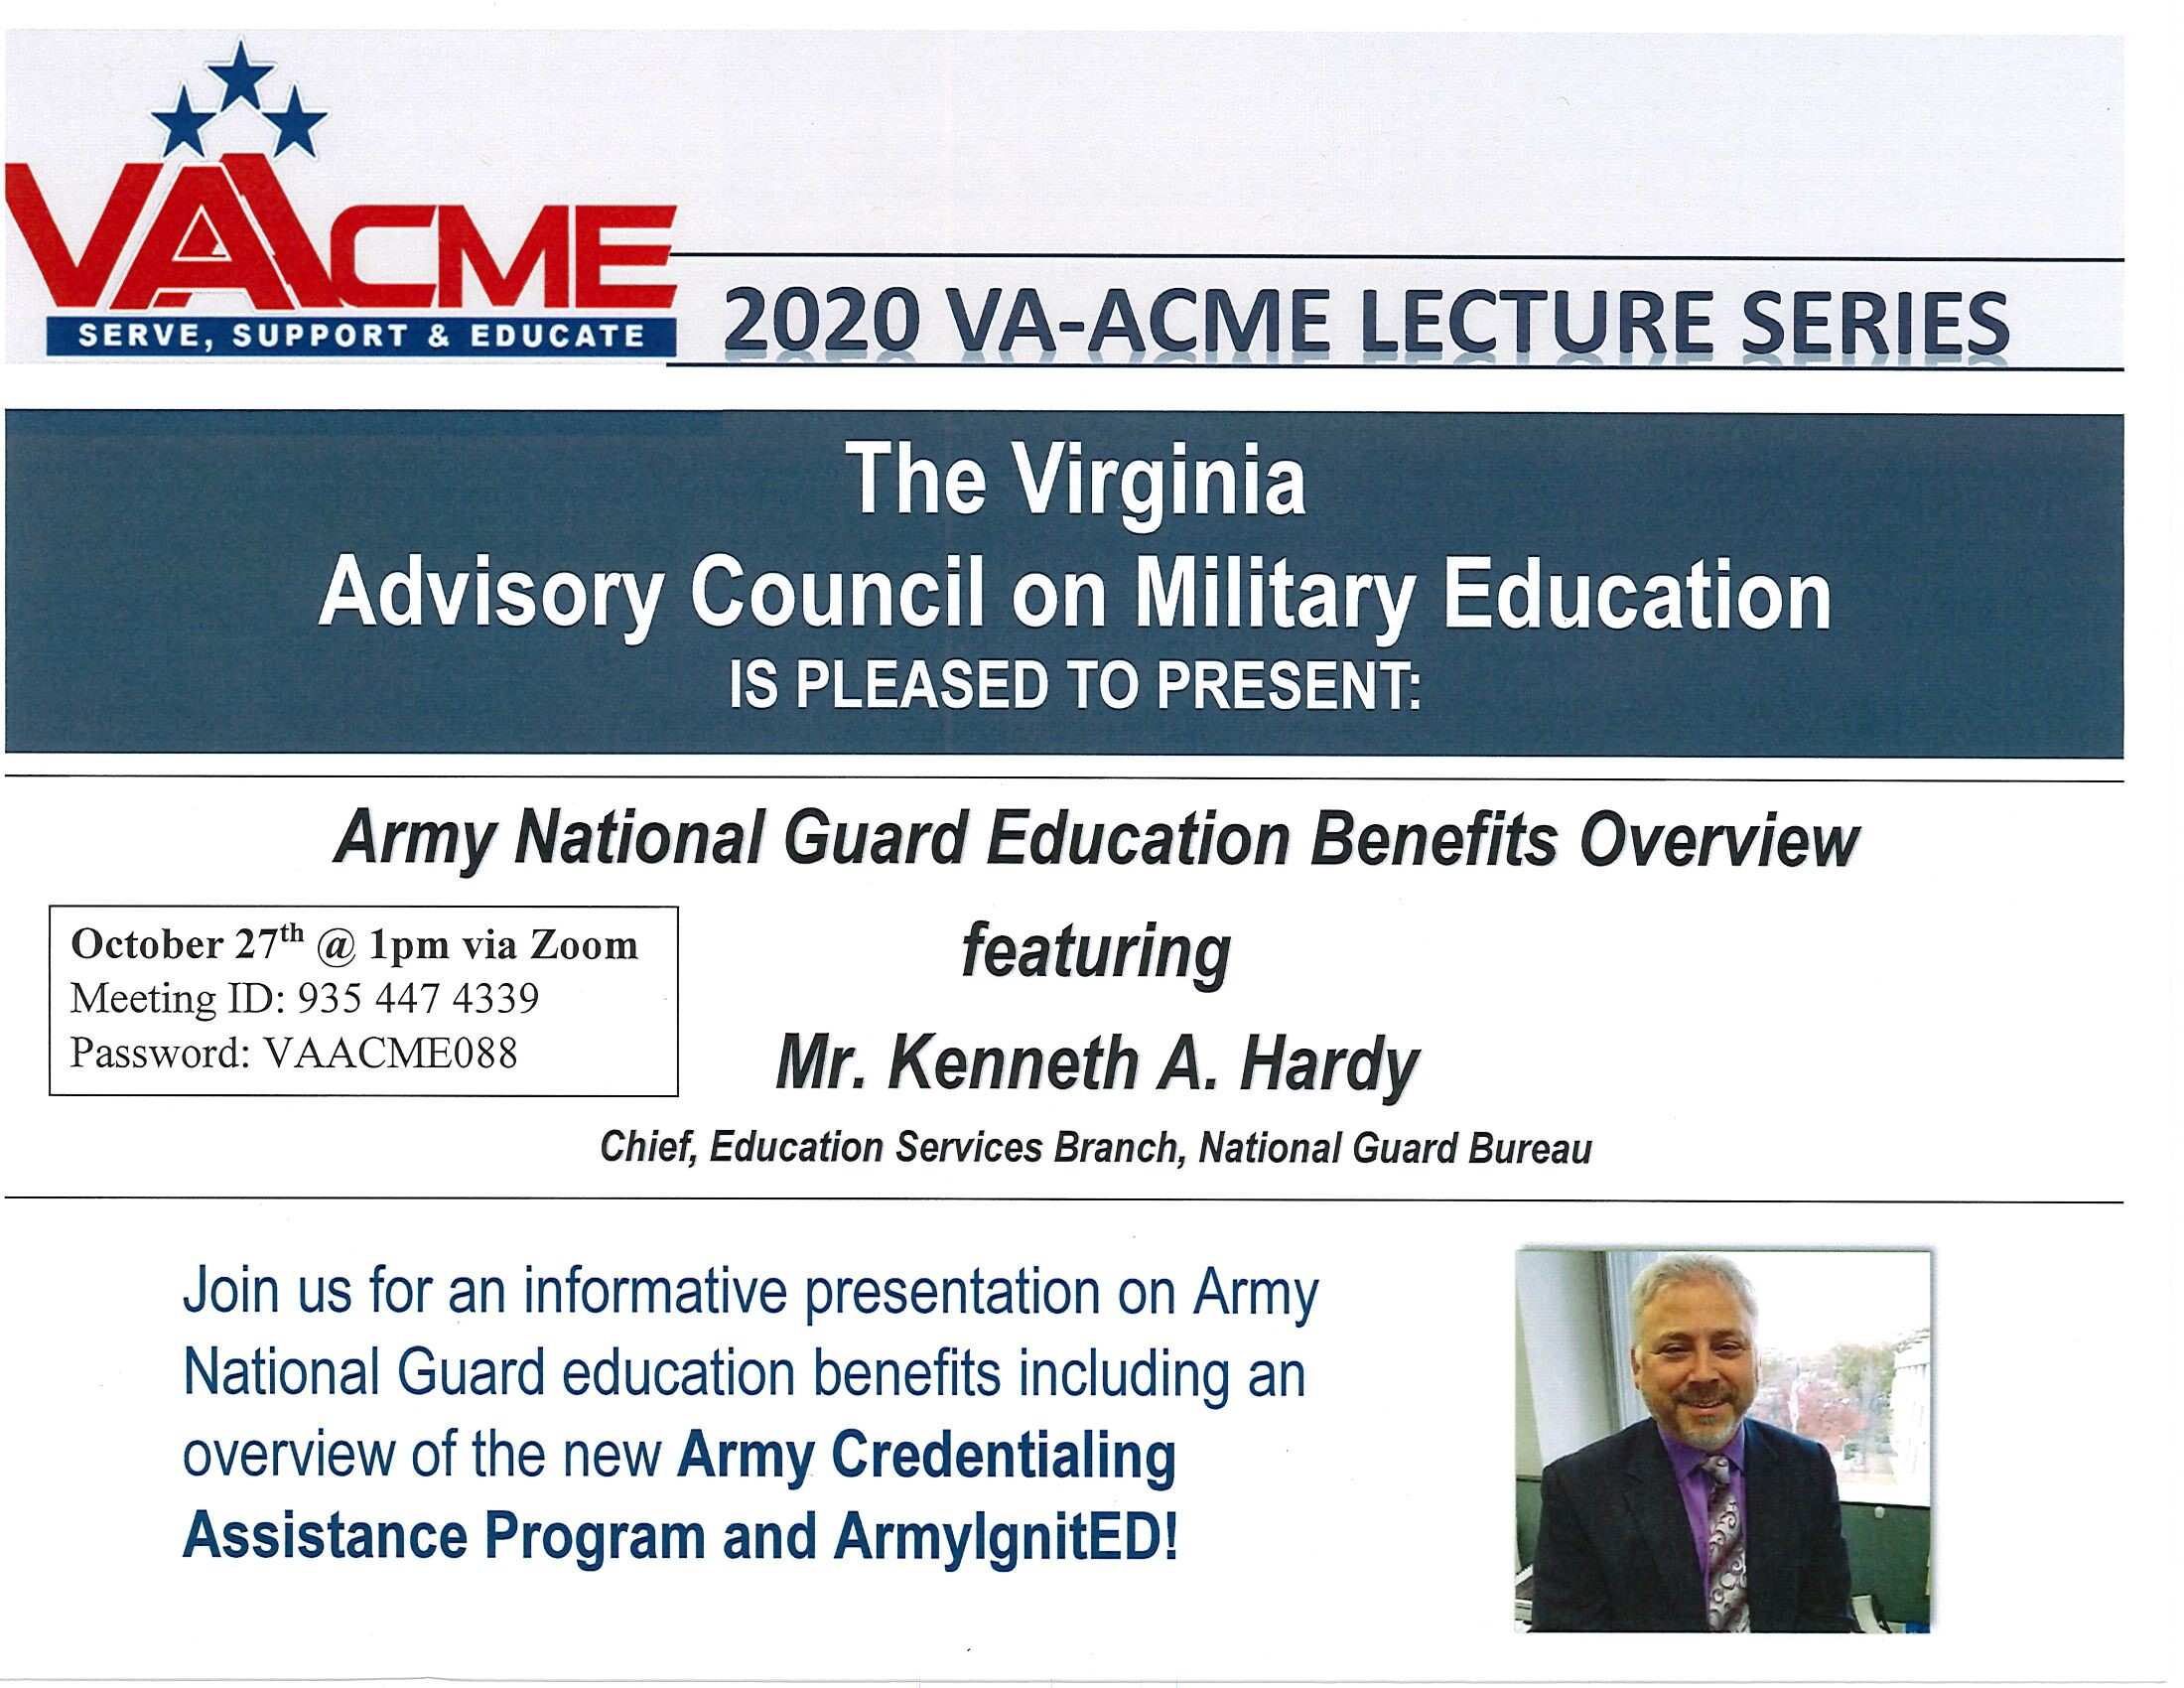 VA-ACME Presents: Army National Guard Education Benefits Overview via Zoom Today at 1pm